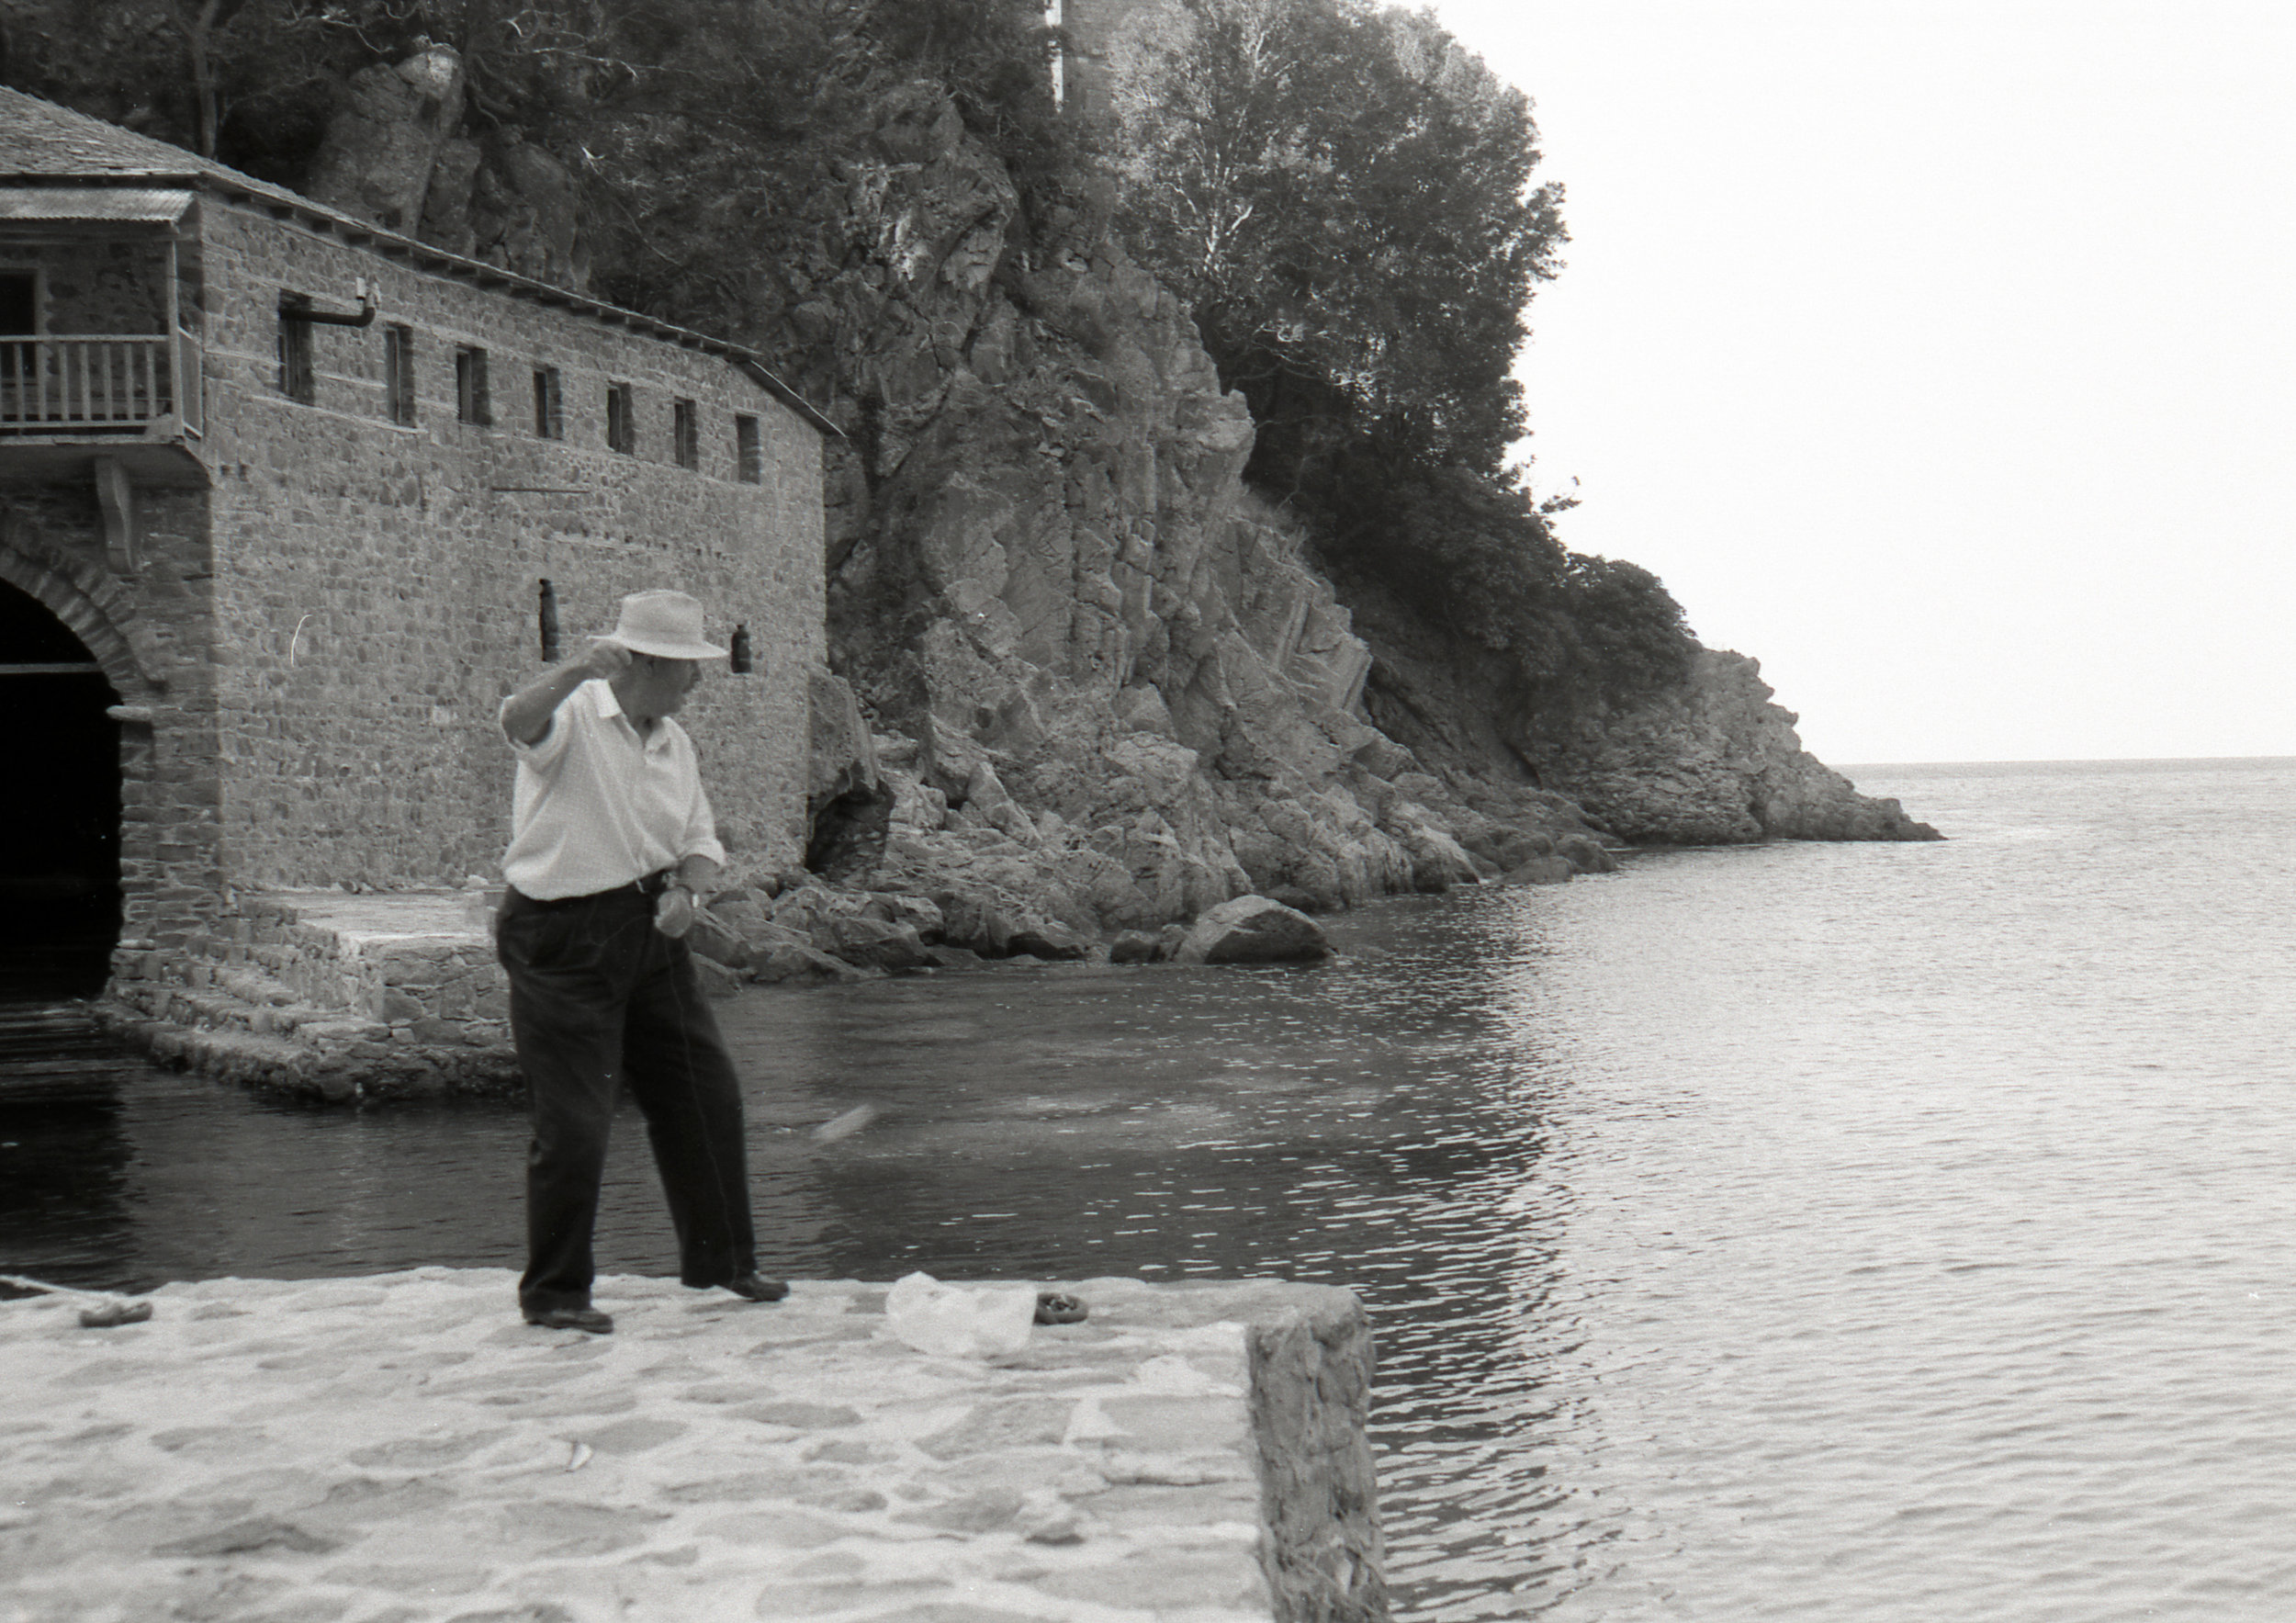 A man fishes at Mt Athos